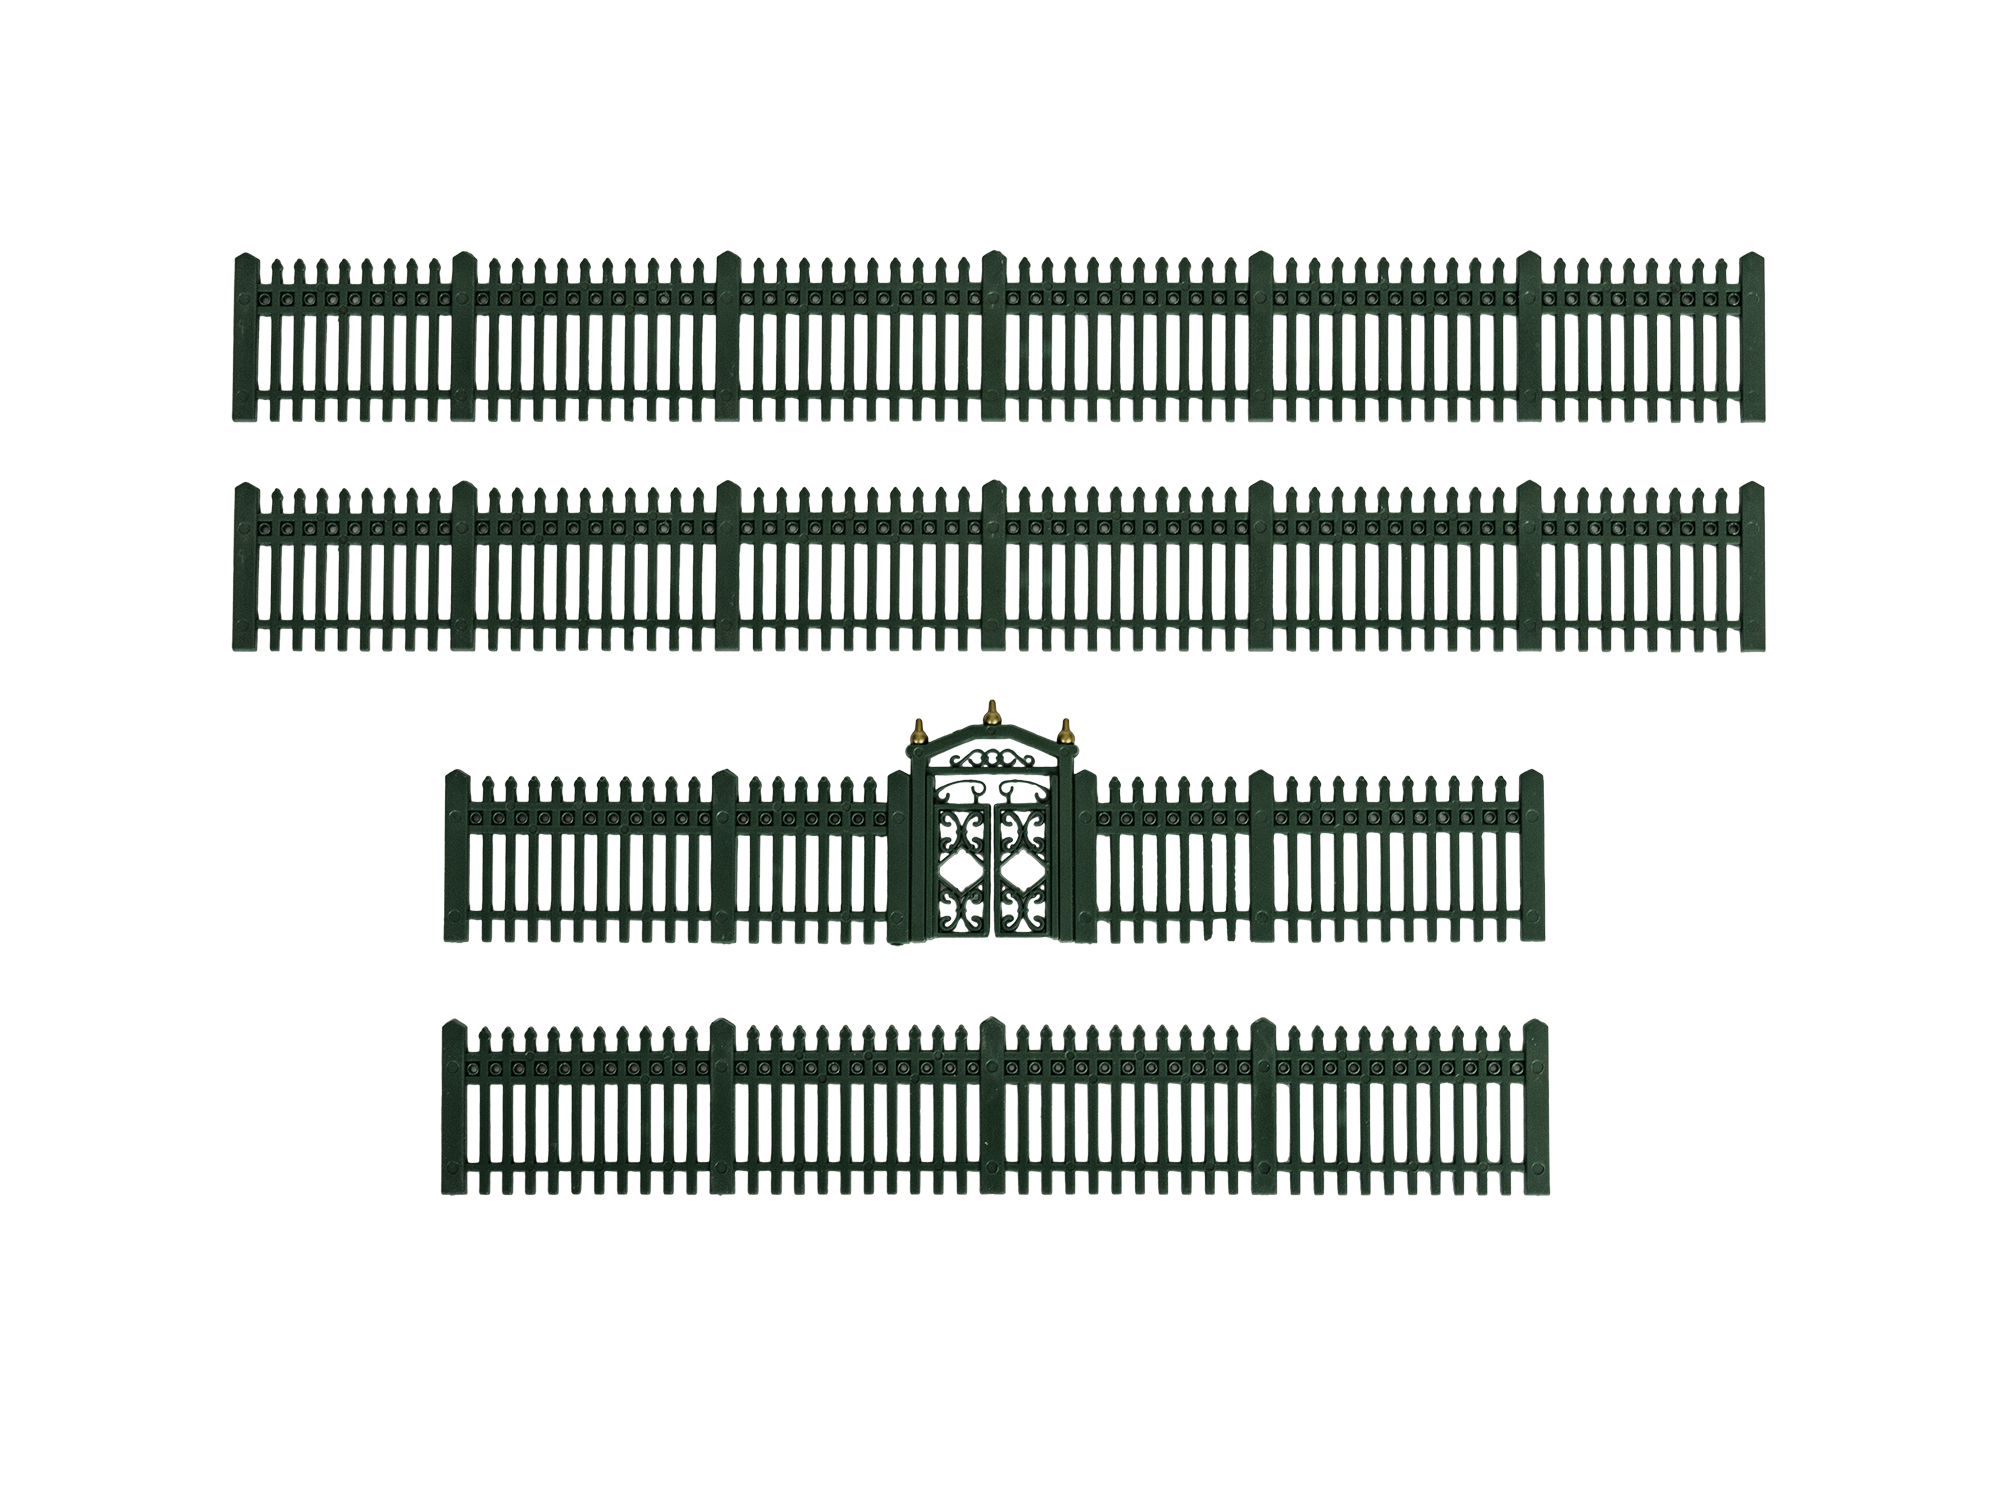 Lionel 1930170 O Green Iron Fence